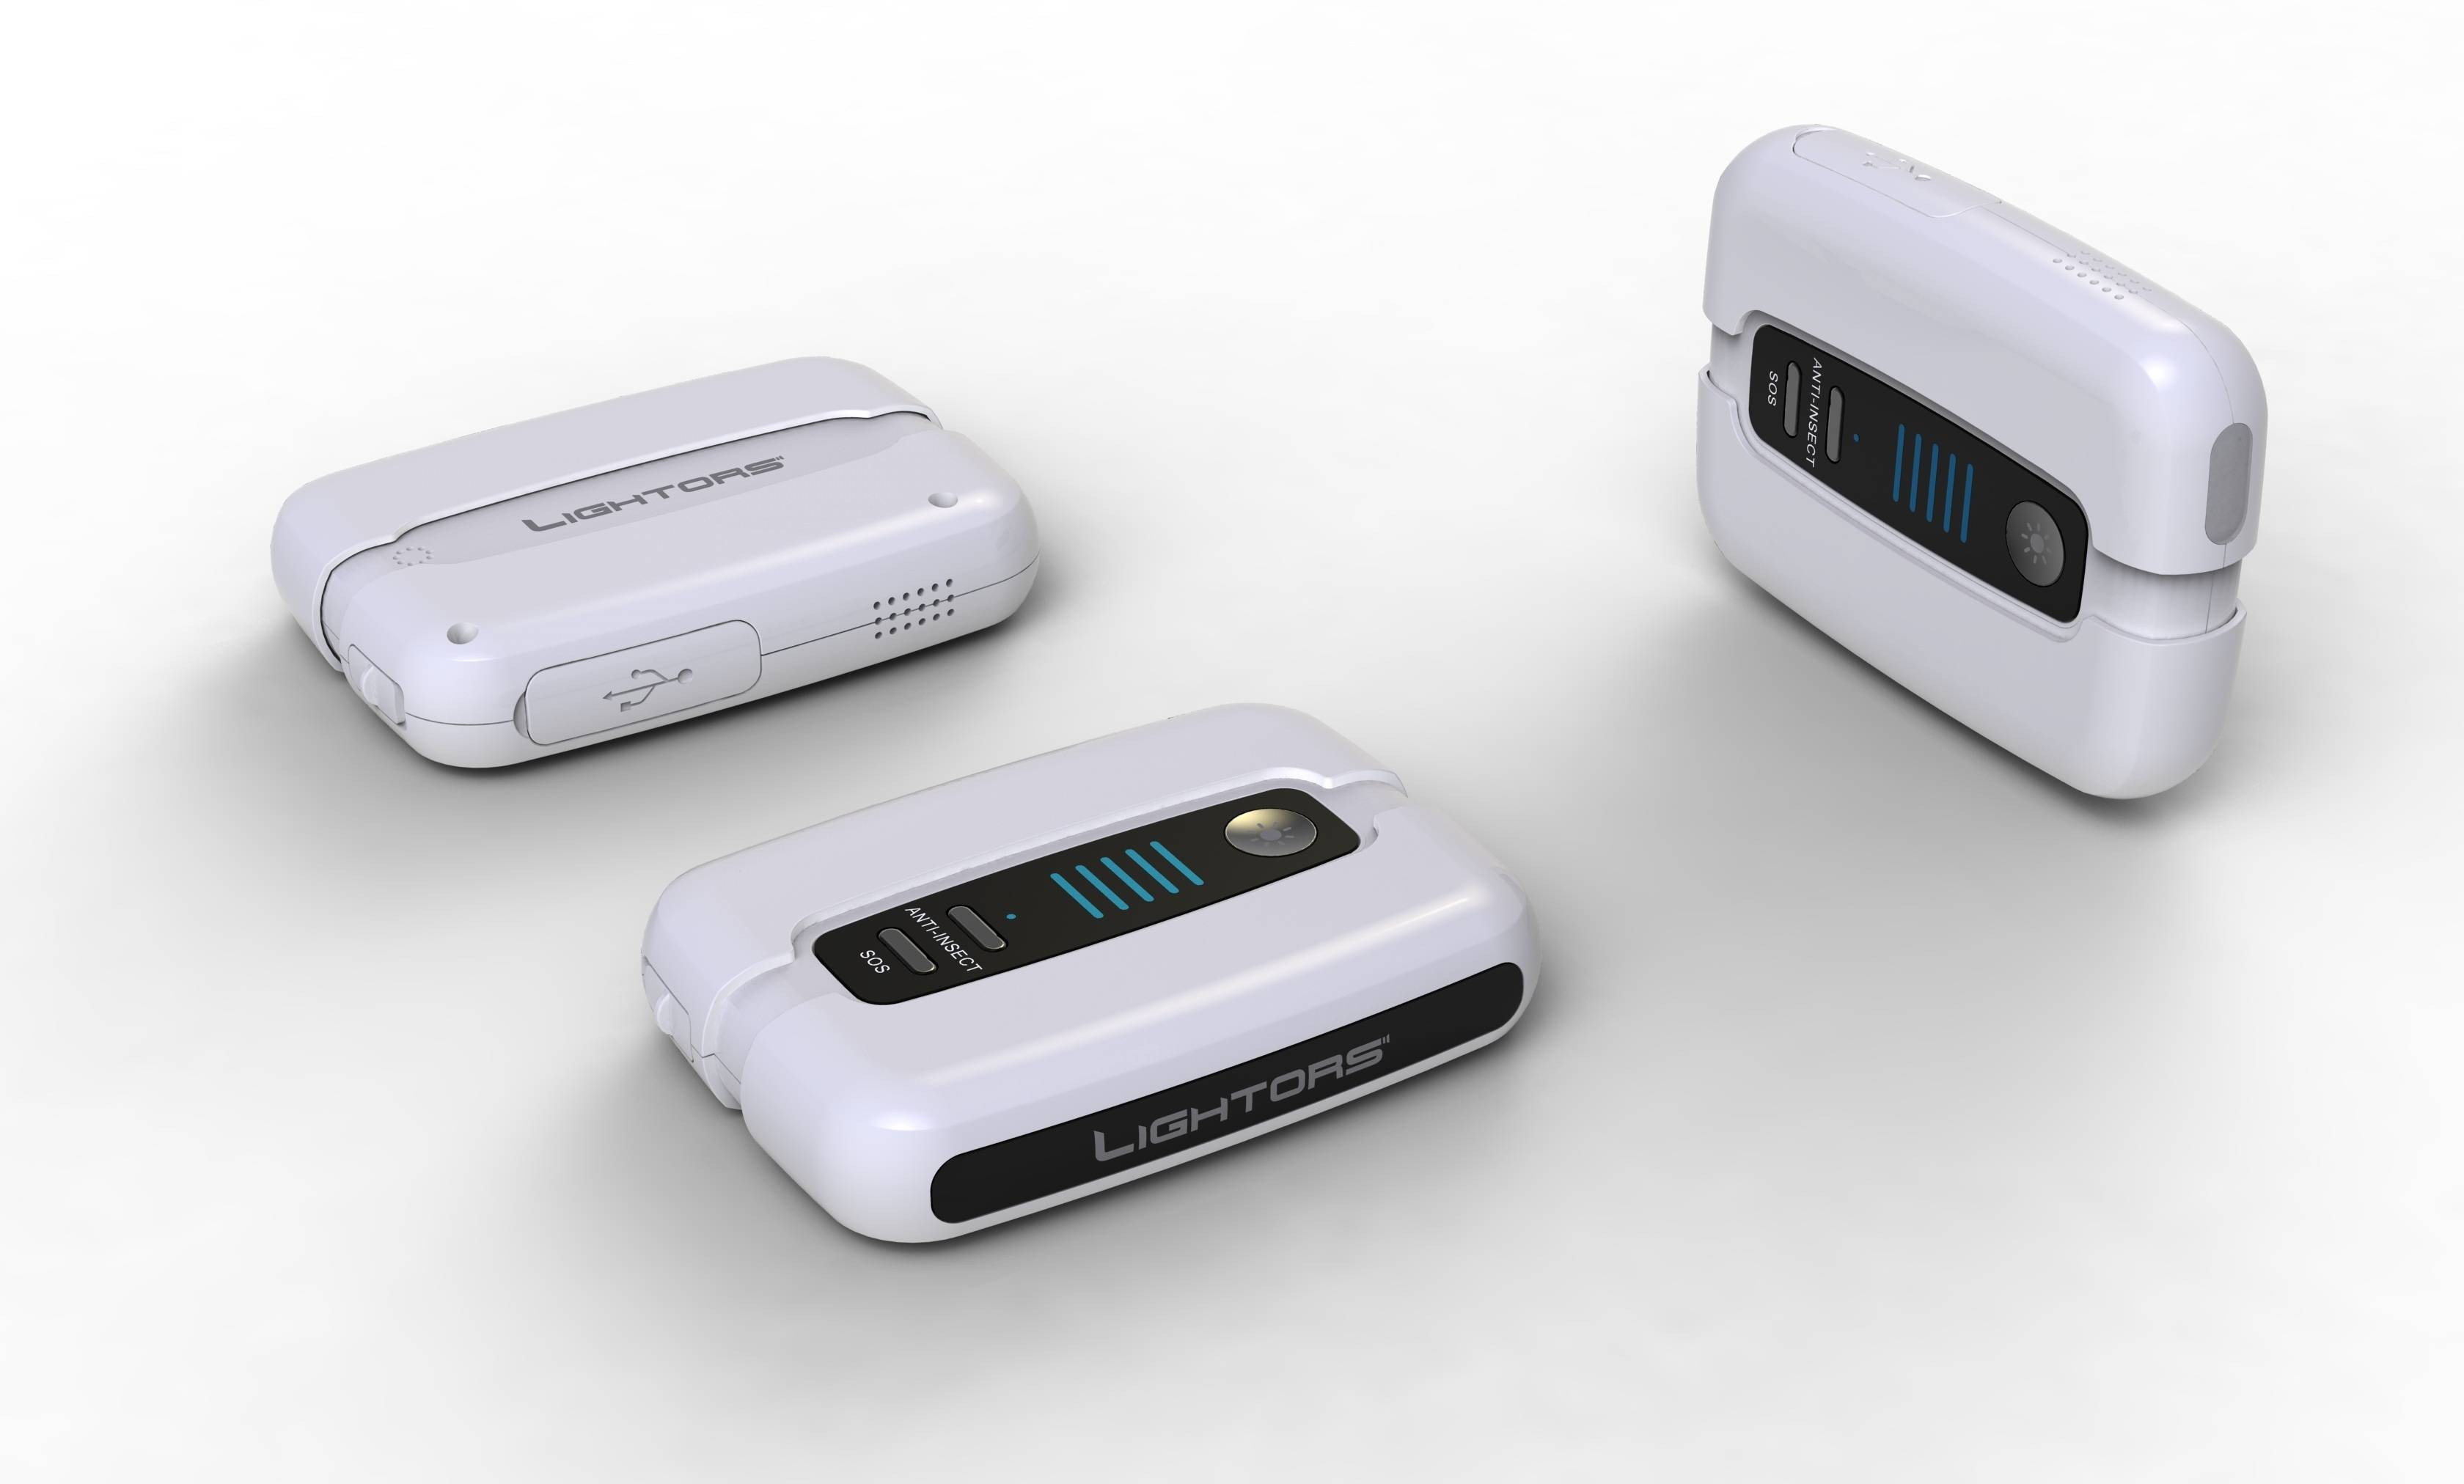 Self-rechargeable external battery pack with hand gripper